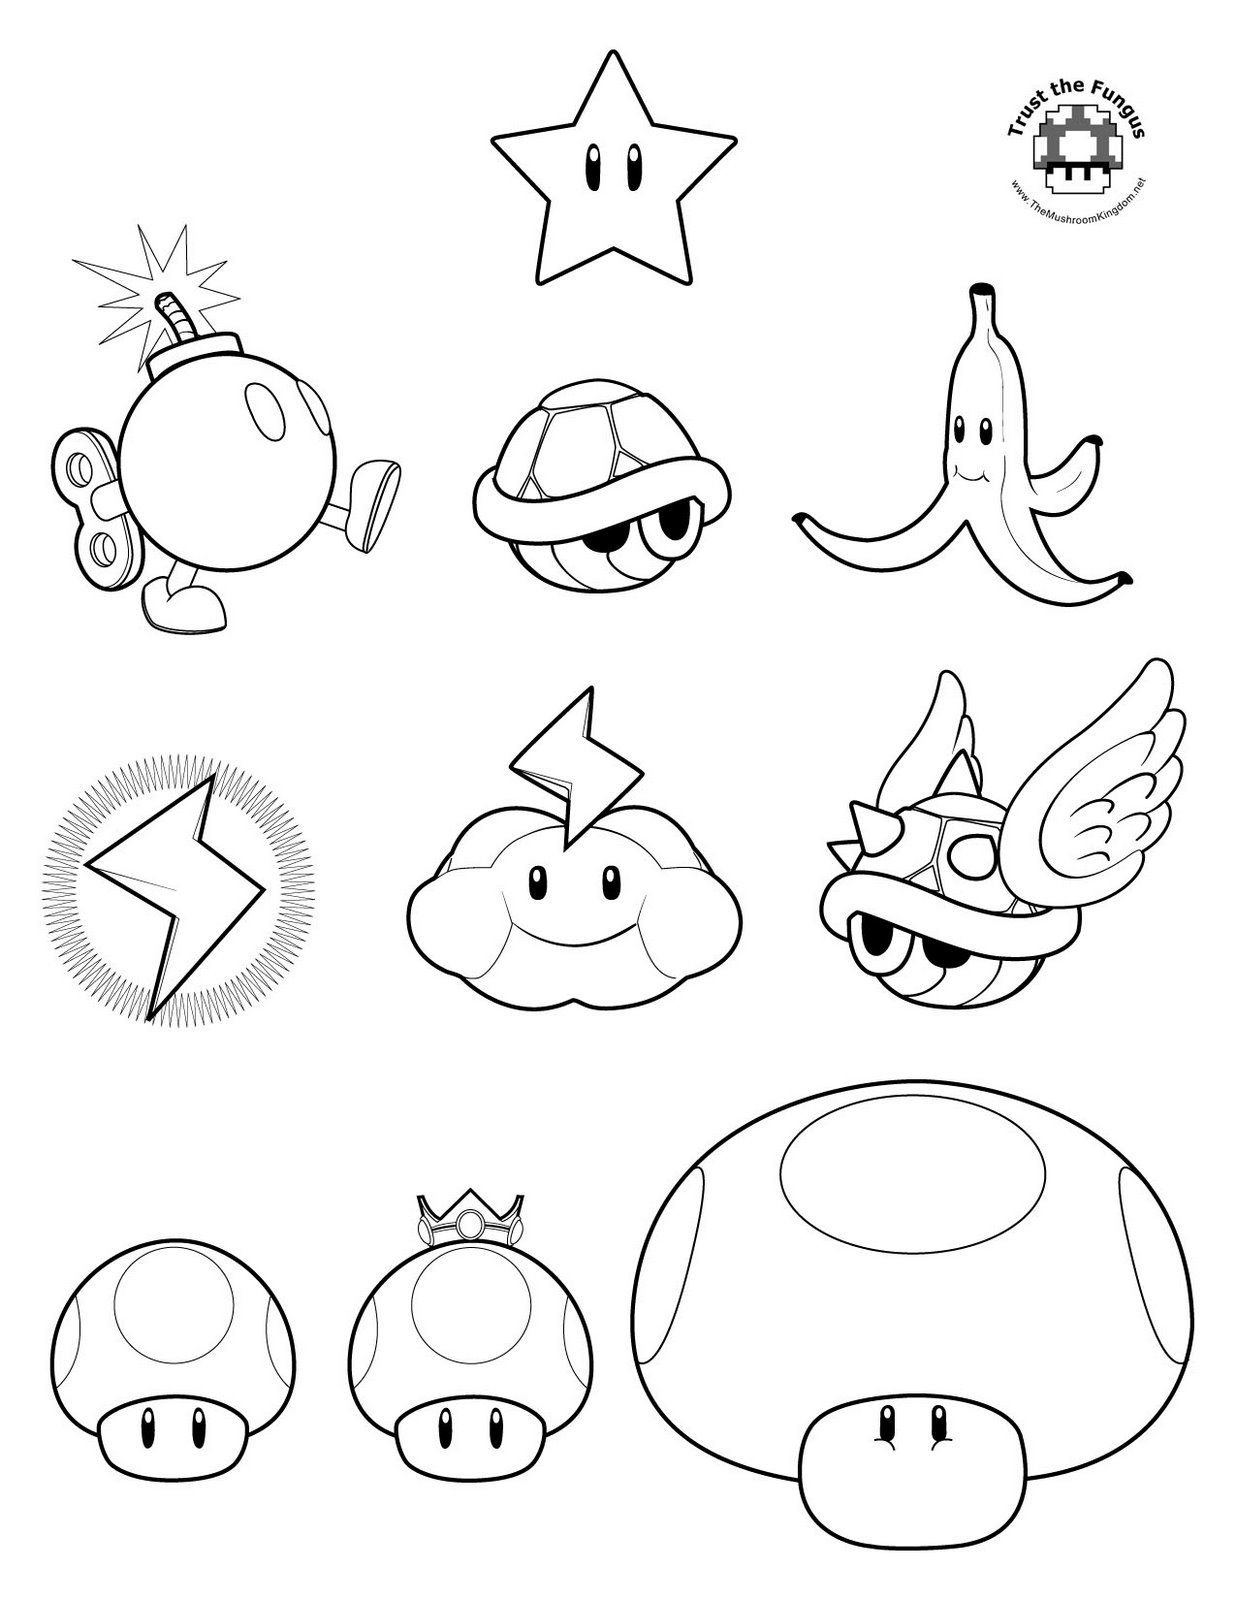 mario brothers coloring pages free - photo#8